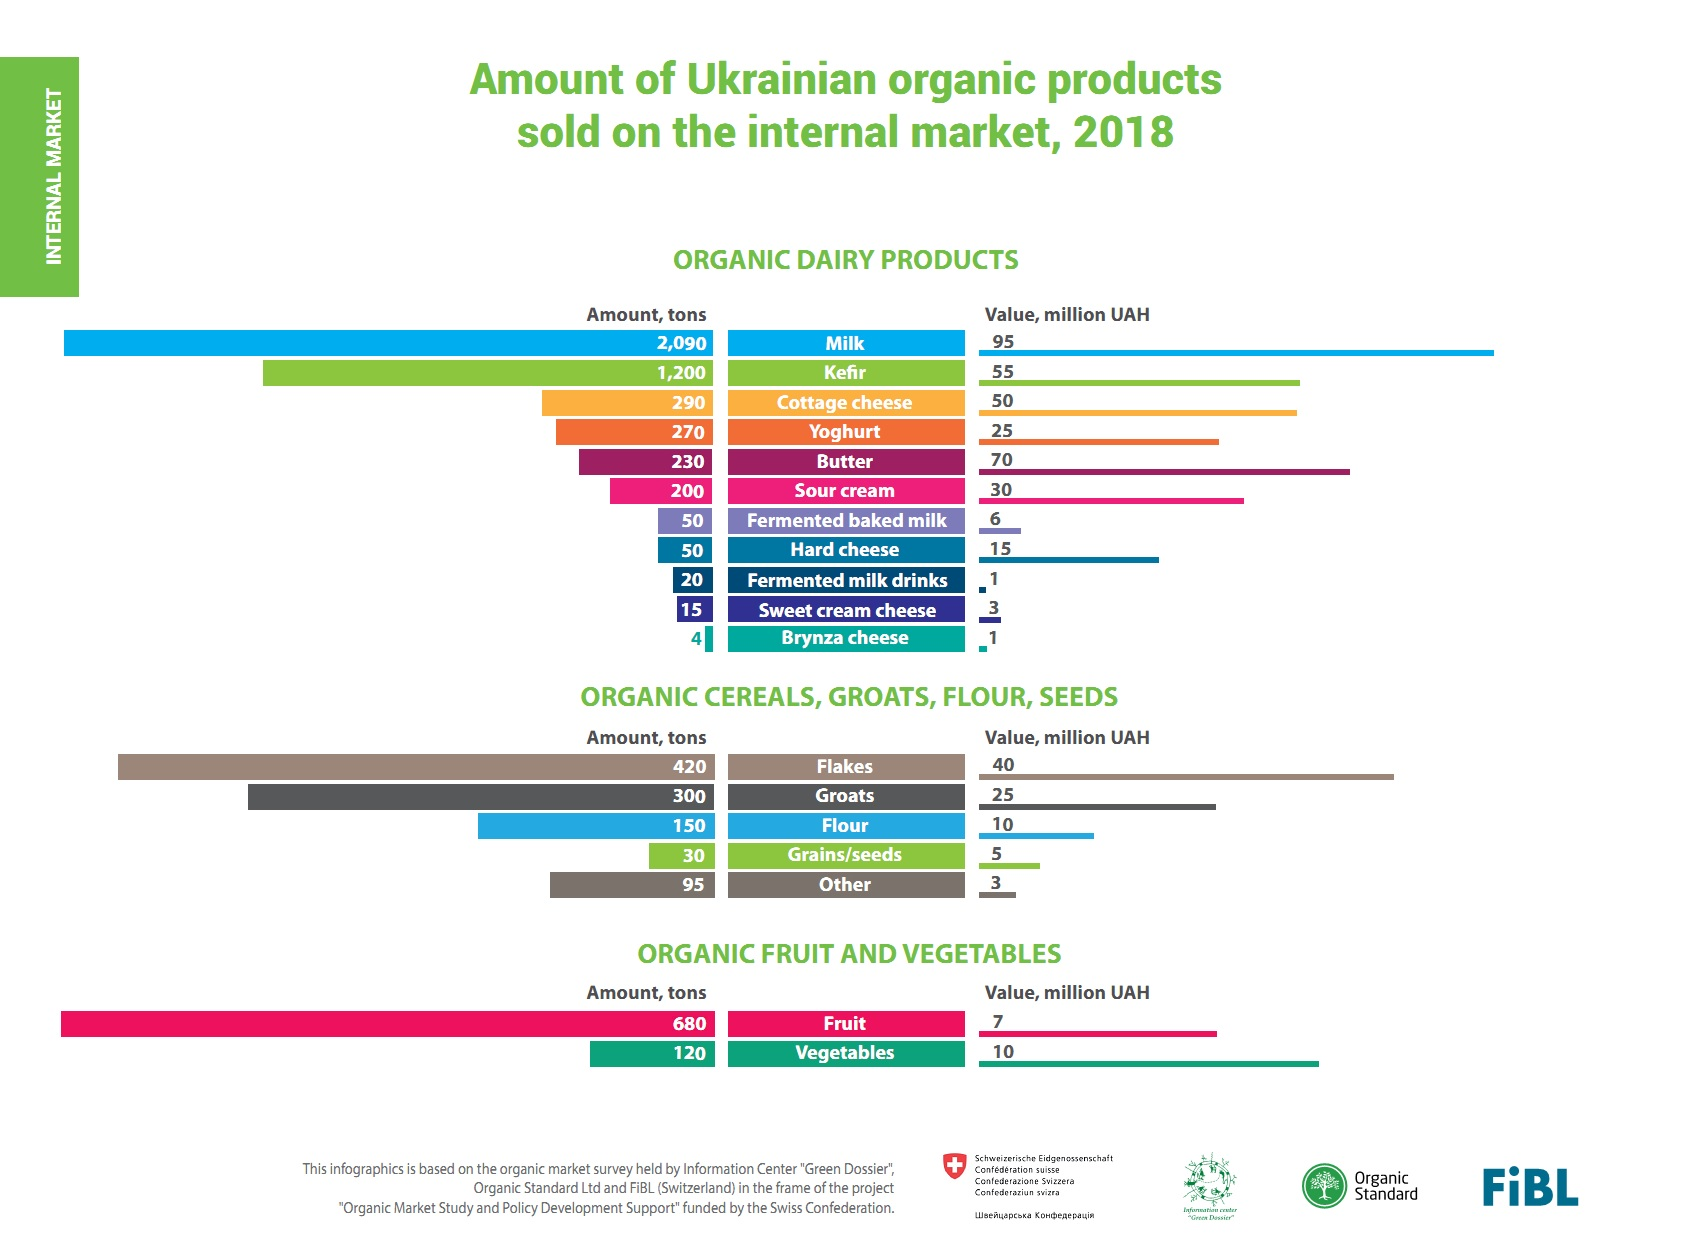 Amount of Ukrainian organic products sold on the internal market, 2018 (click for full resolution)